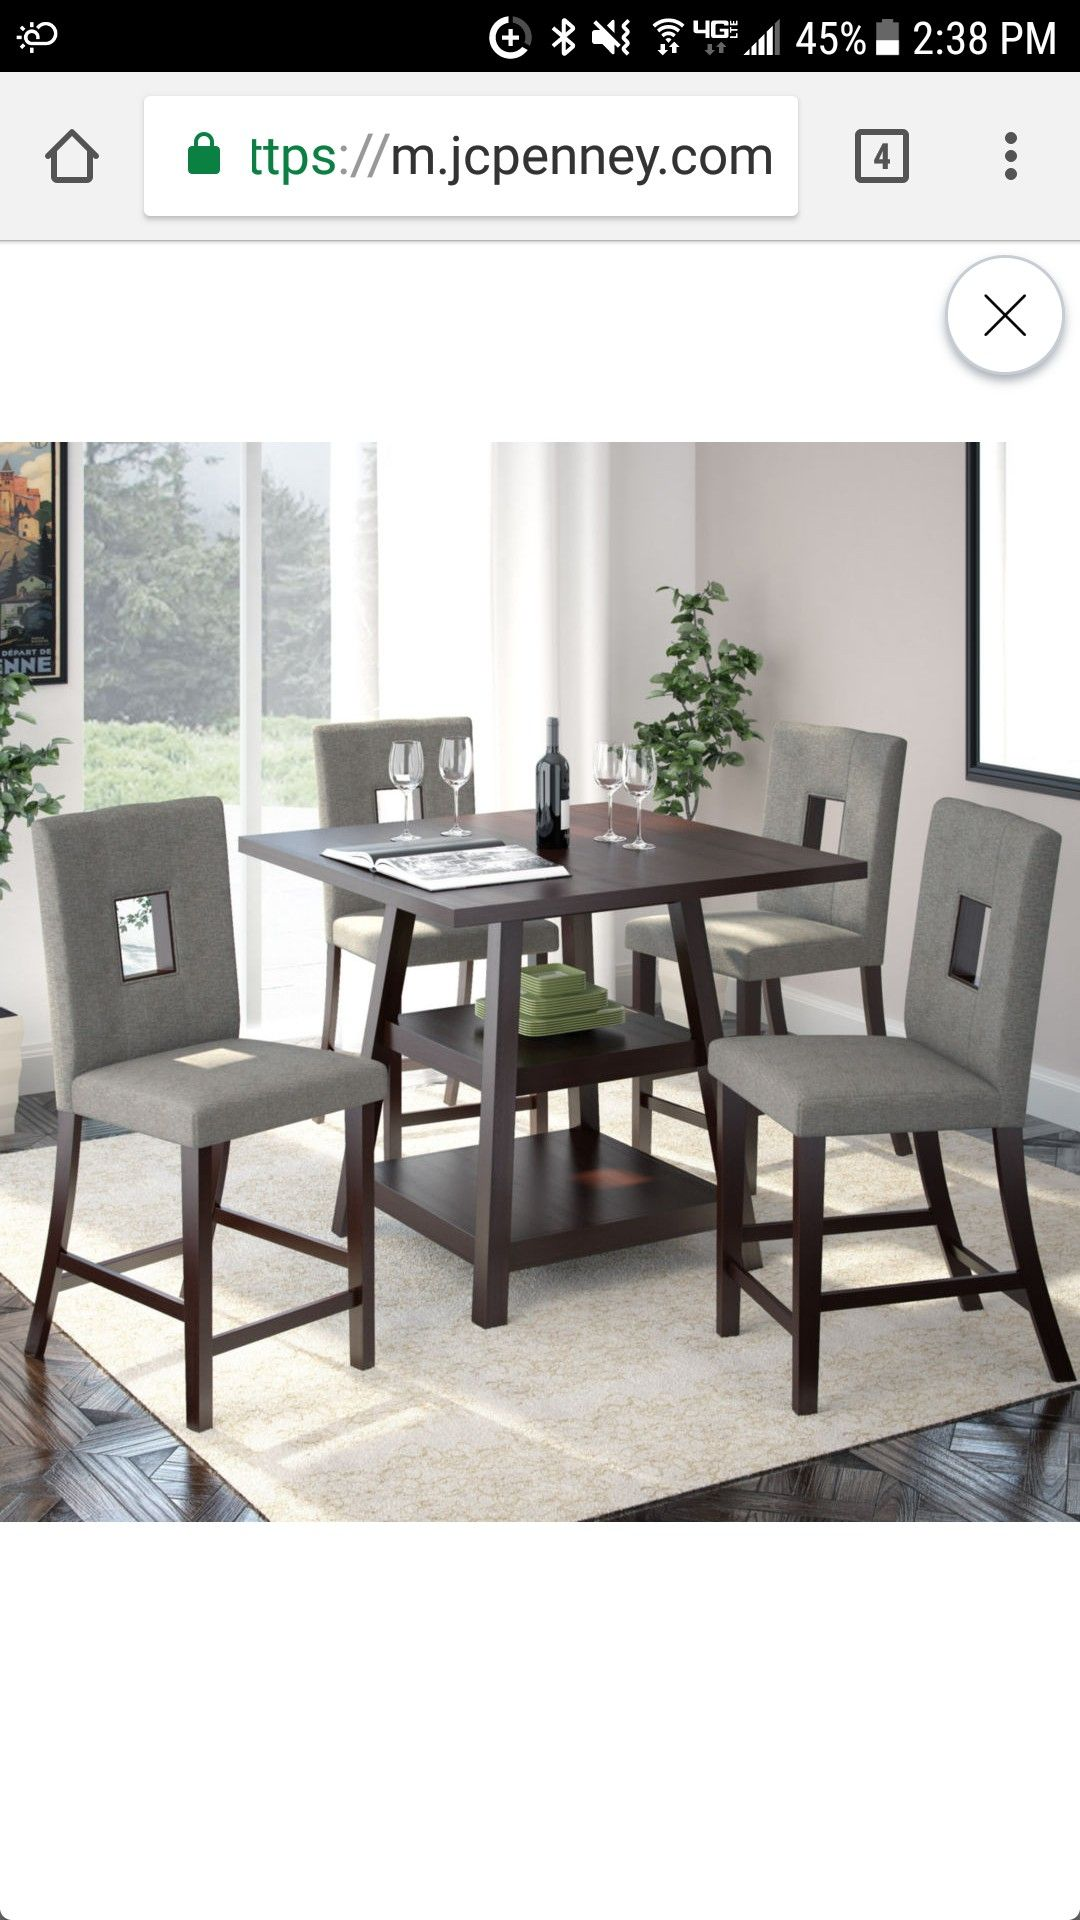 Jcpenney Dining Set Round Dining Room Sets Dining Room Sets Counter Height Dining Sets [ 1920 x 1080 Pixel ]